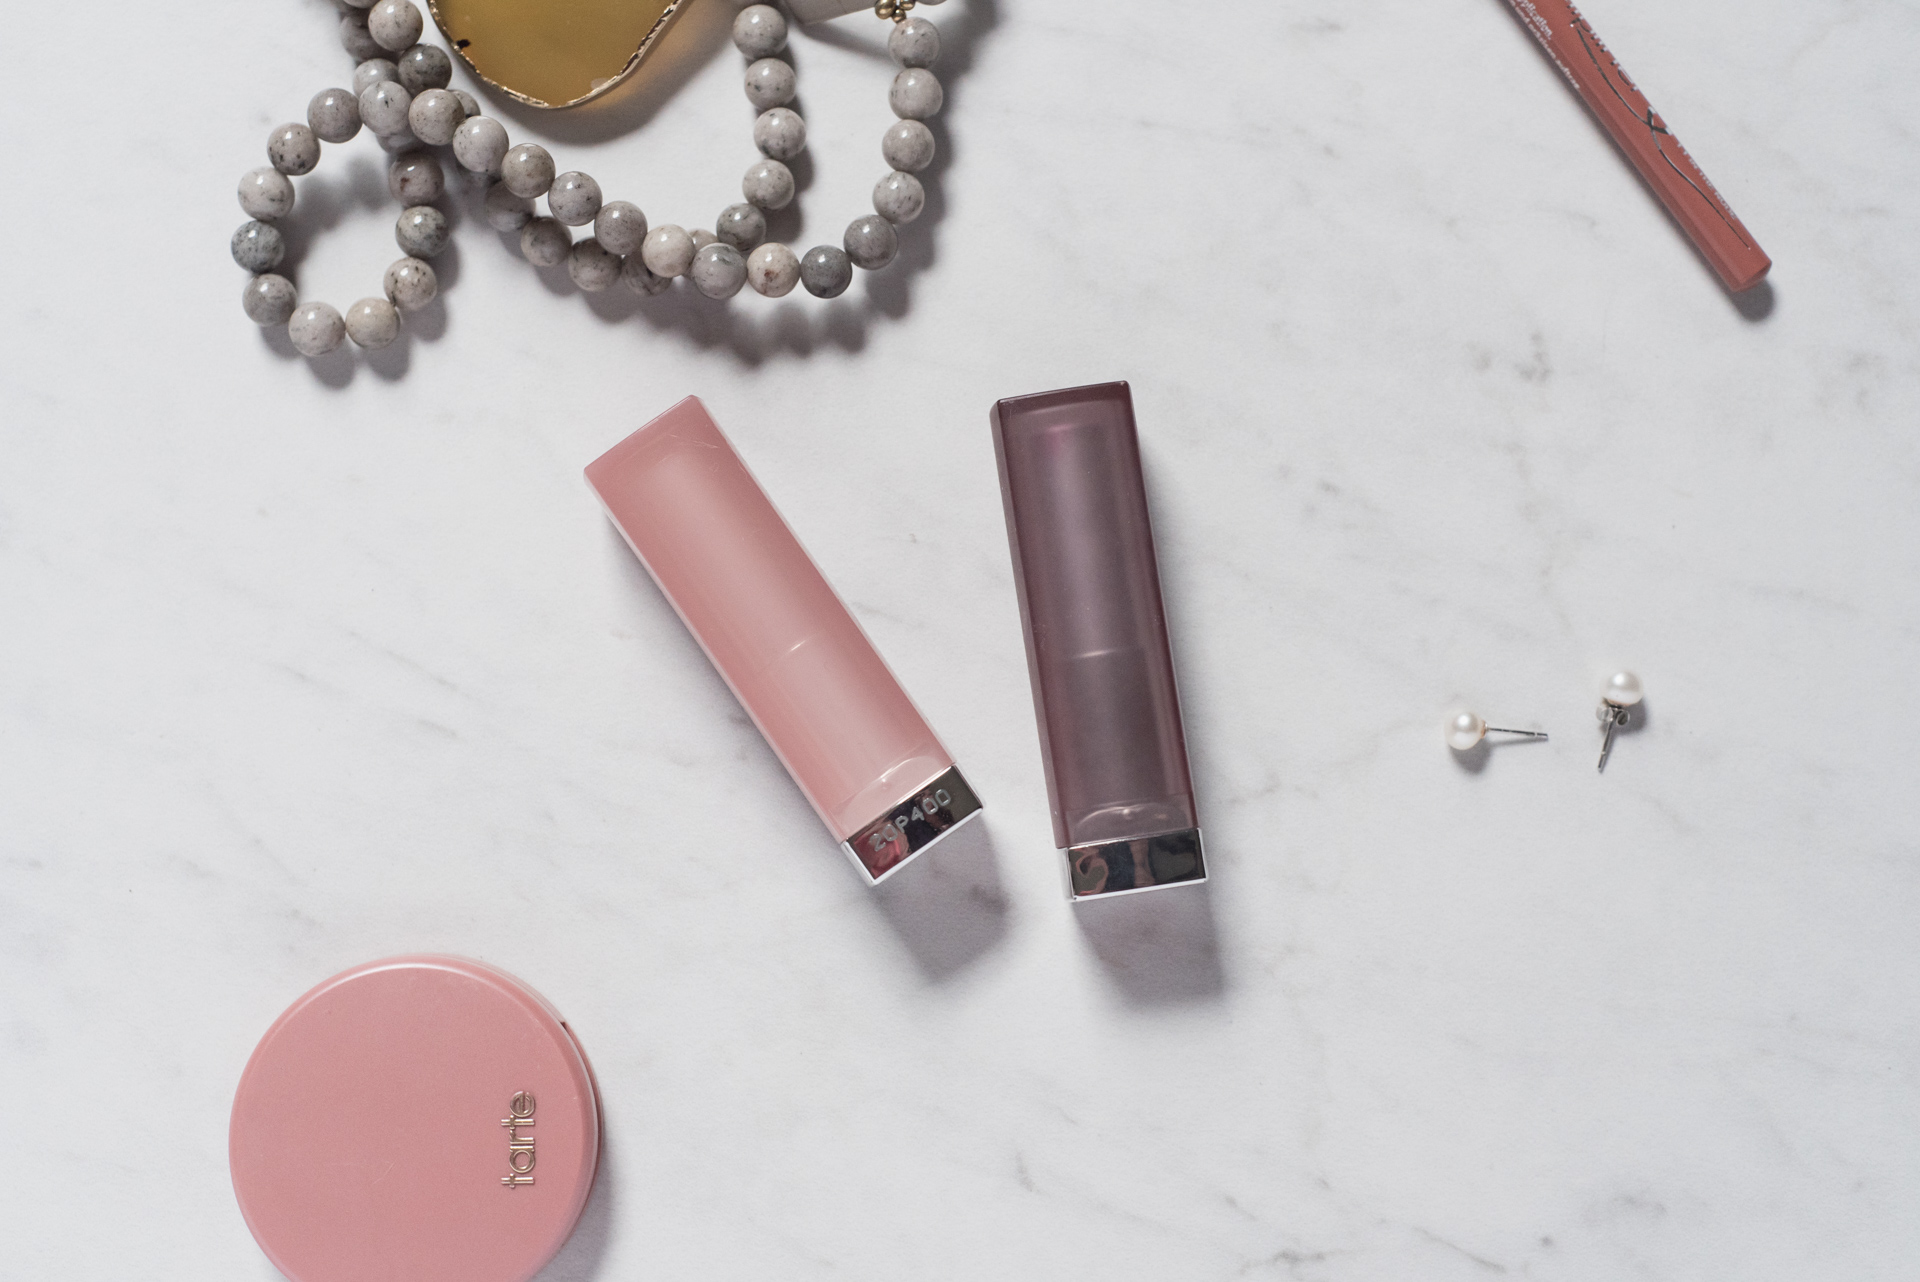 My Top Picks for Affordable Lip Products